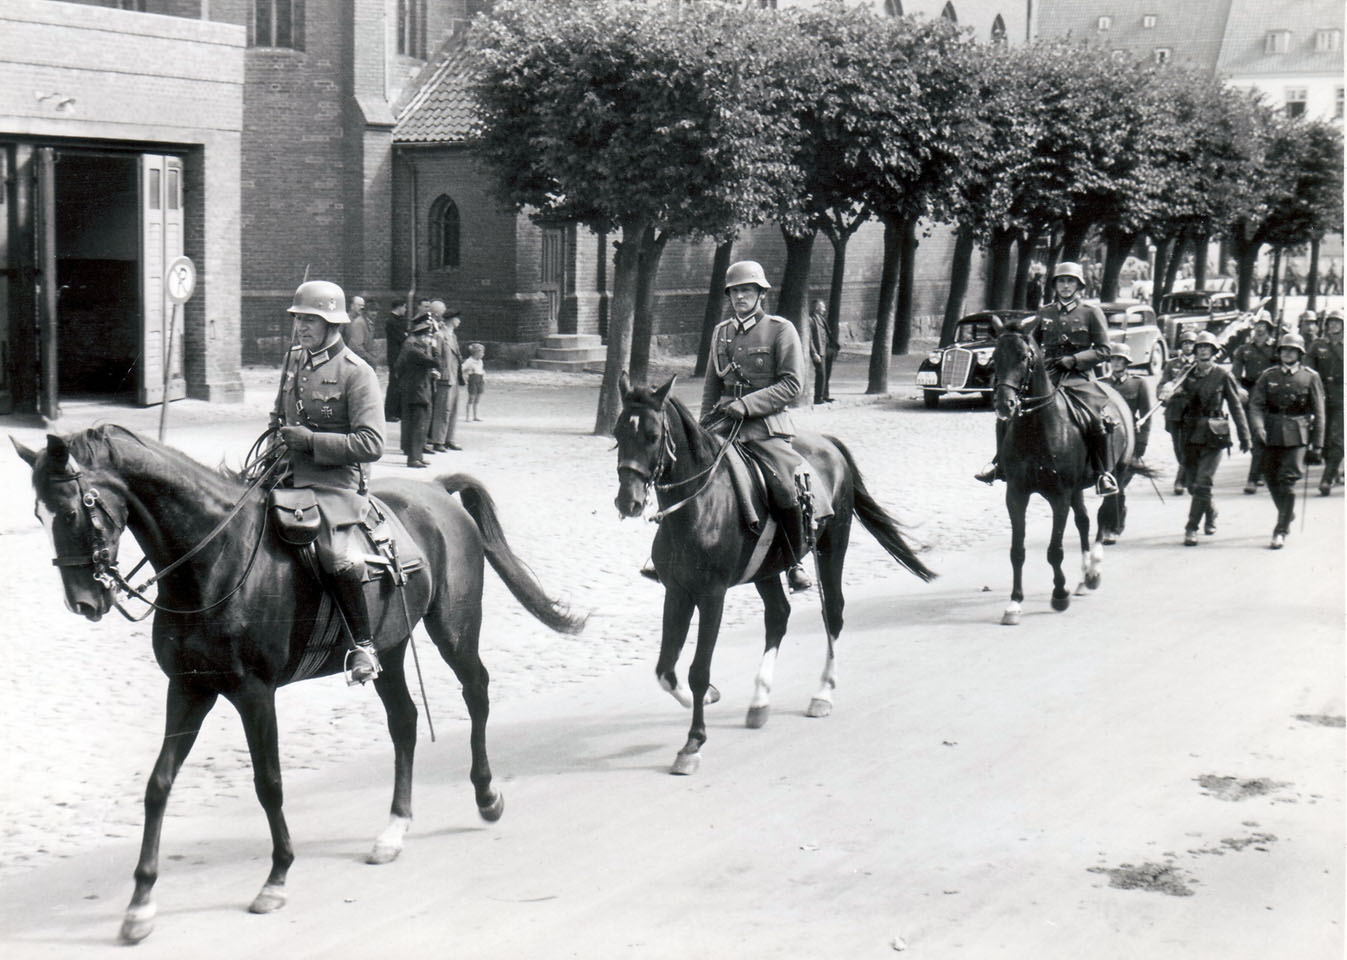 Officers of III.Infanterie-Regiment 22 in horseback, Gumbinnen, 1938.jpg